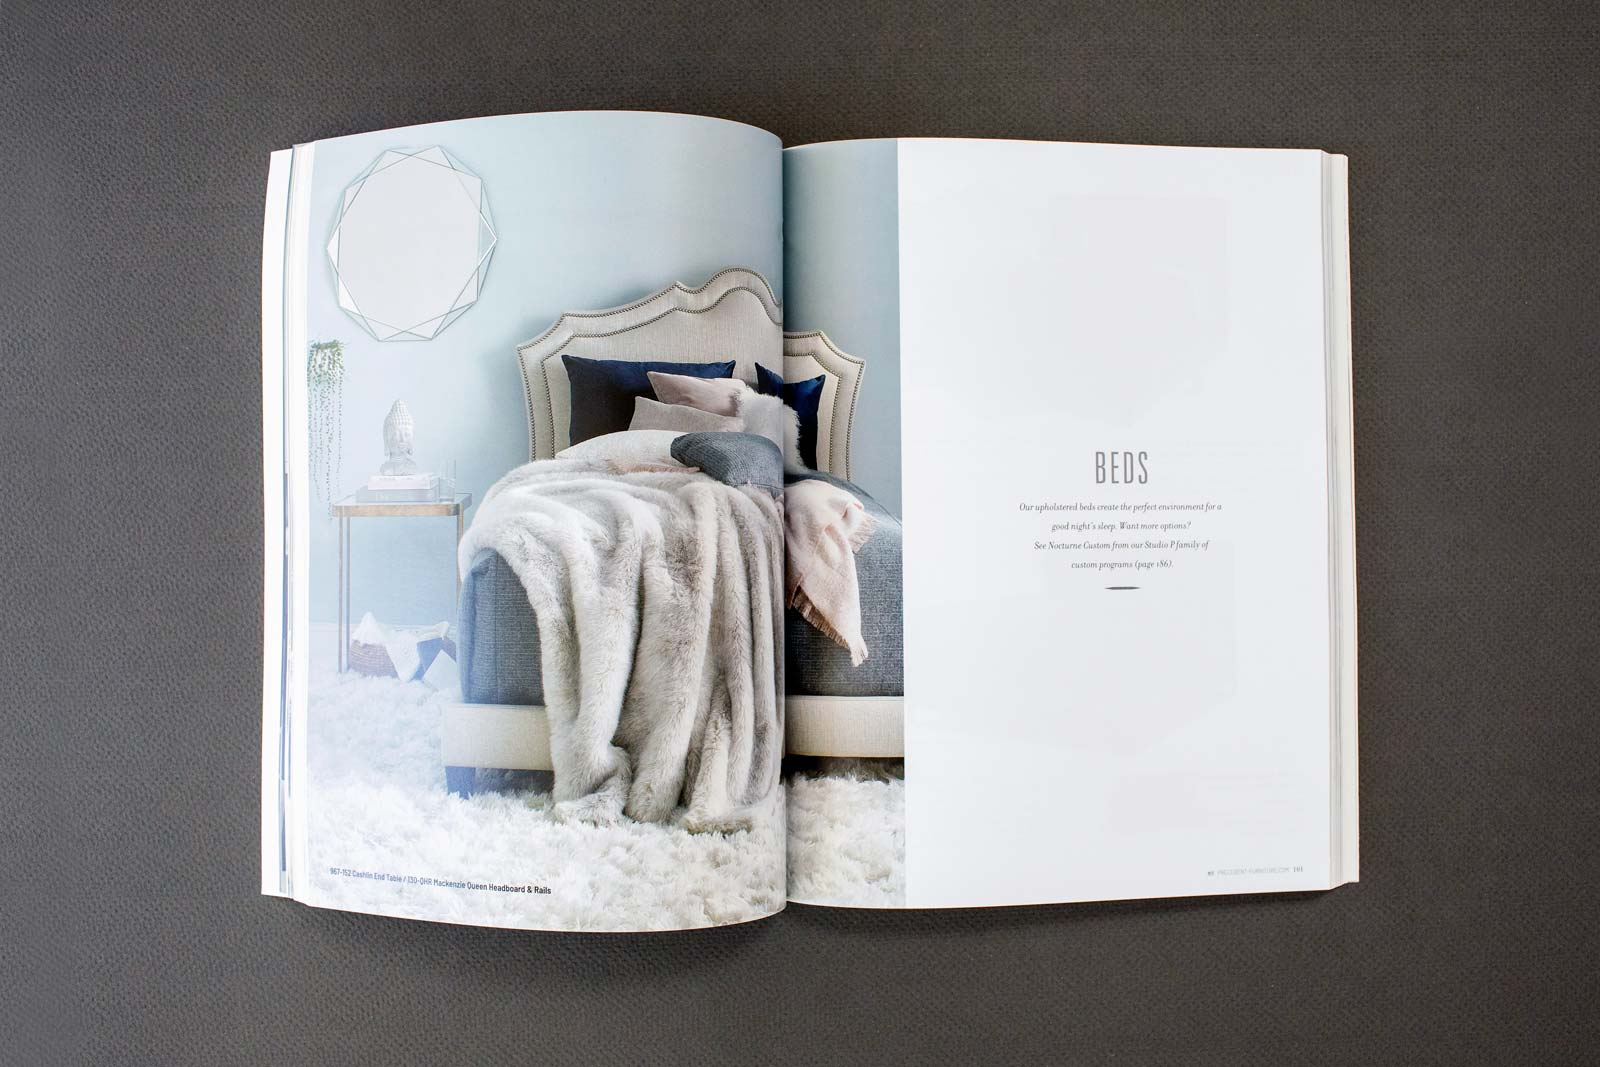 Precedent Furniture catalog spread with a bed and cover. Blue wall and a neutral blanket.